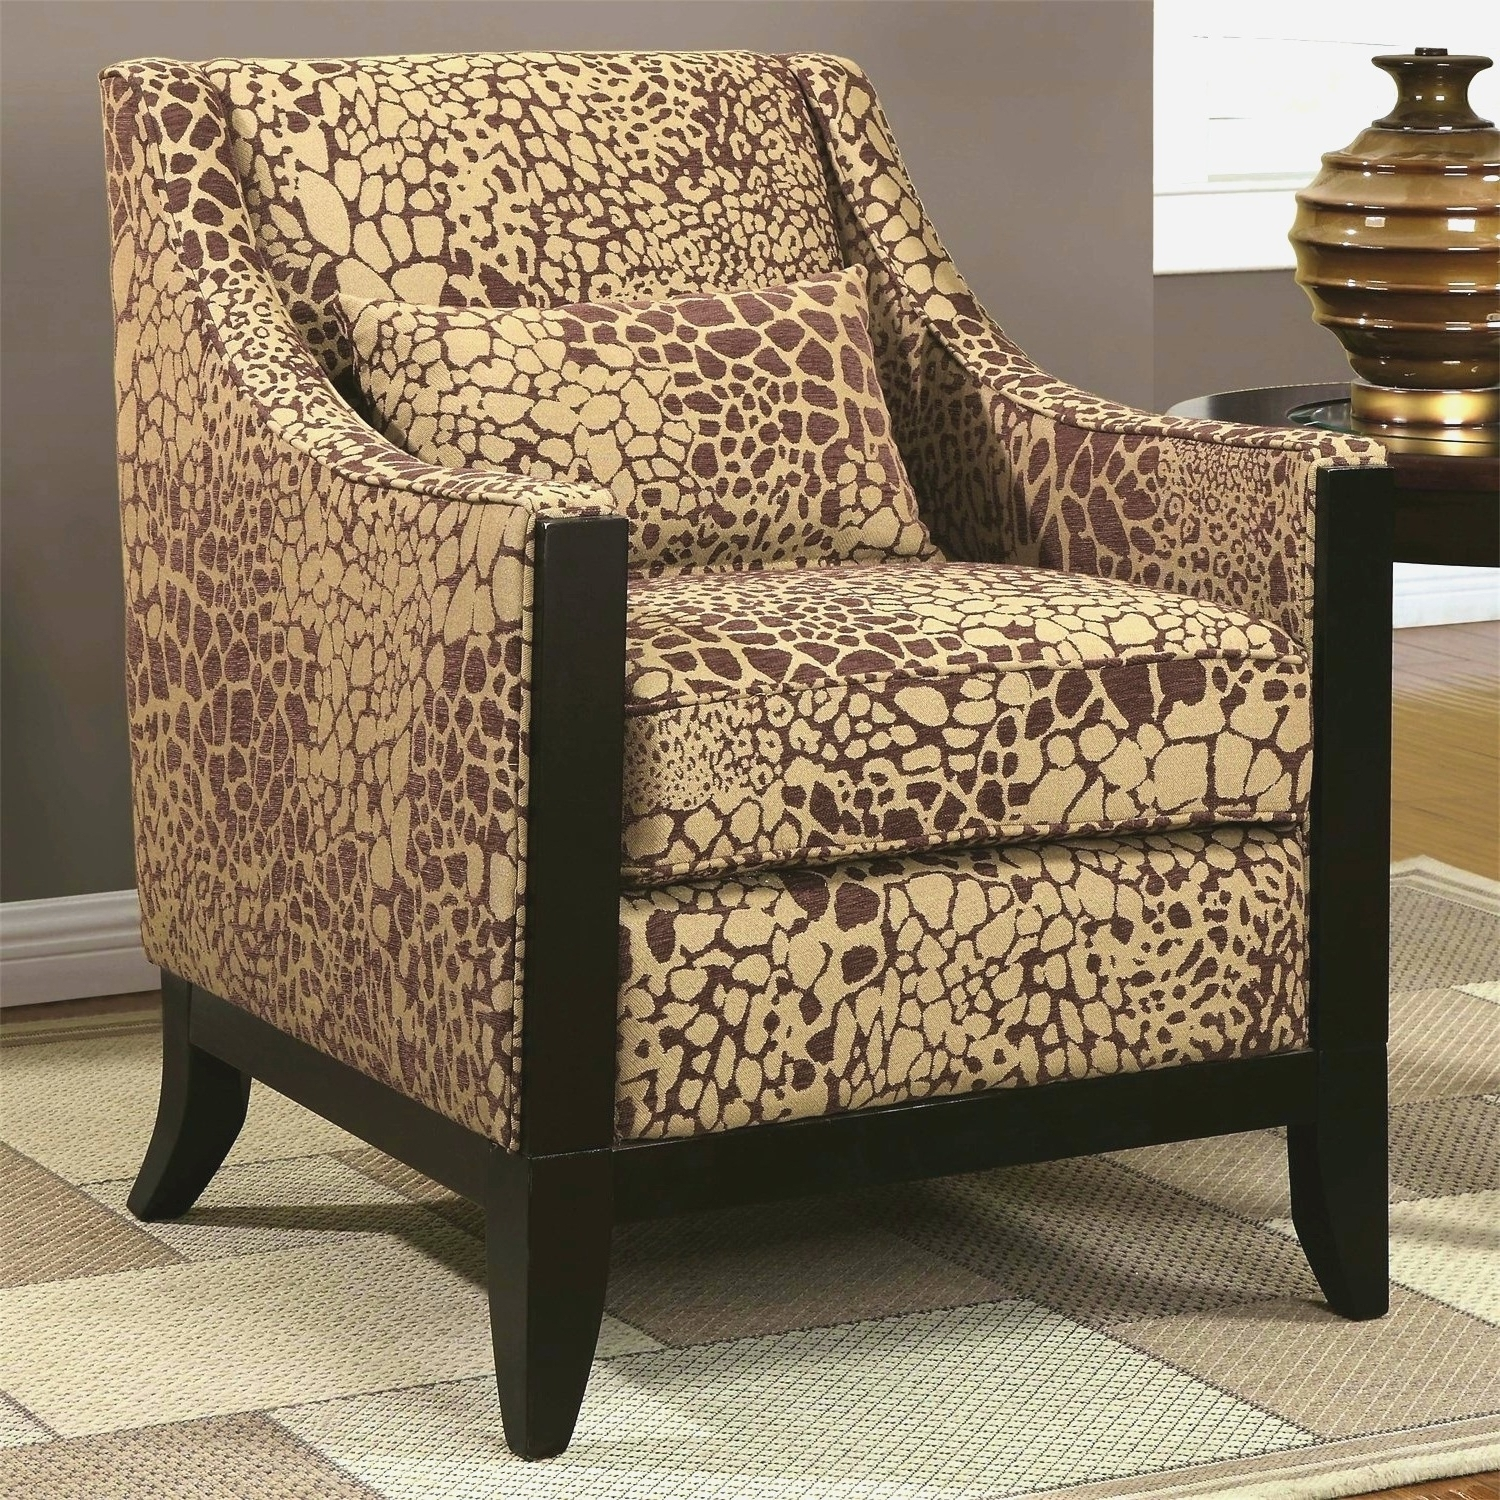 Leopard Print Chaise Lounge Chair • Lounge Chairs Ideas Regarding Trendy Leopard Print Chaise Lounges (View 3 of 15)